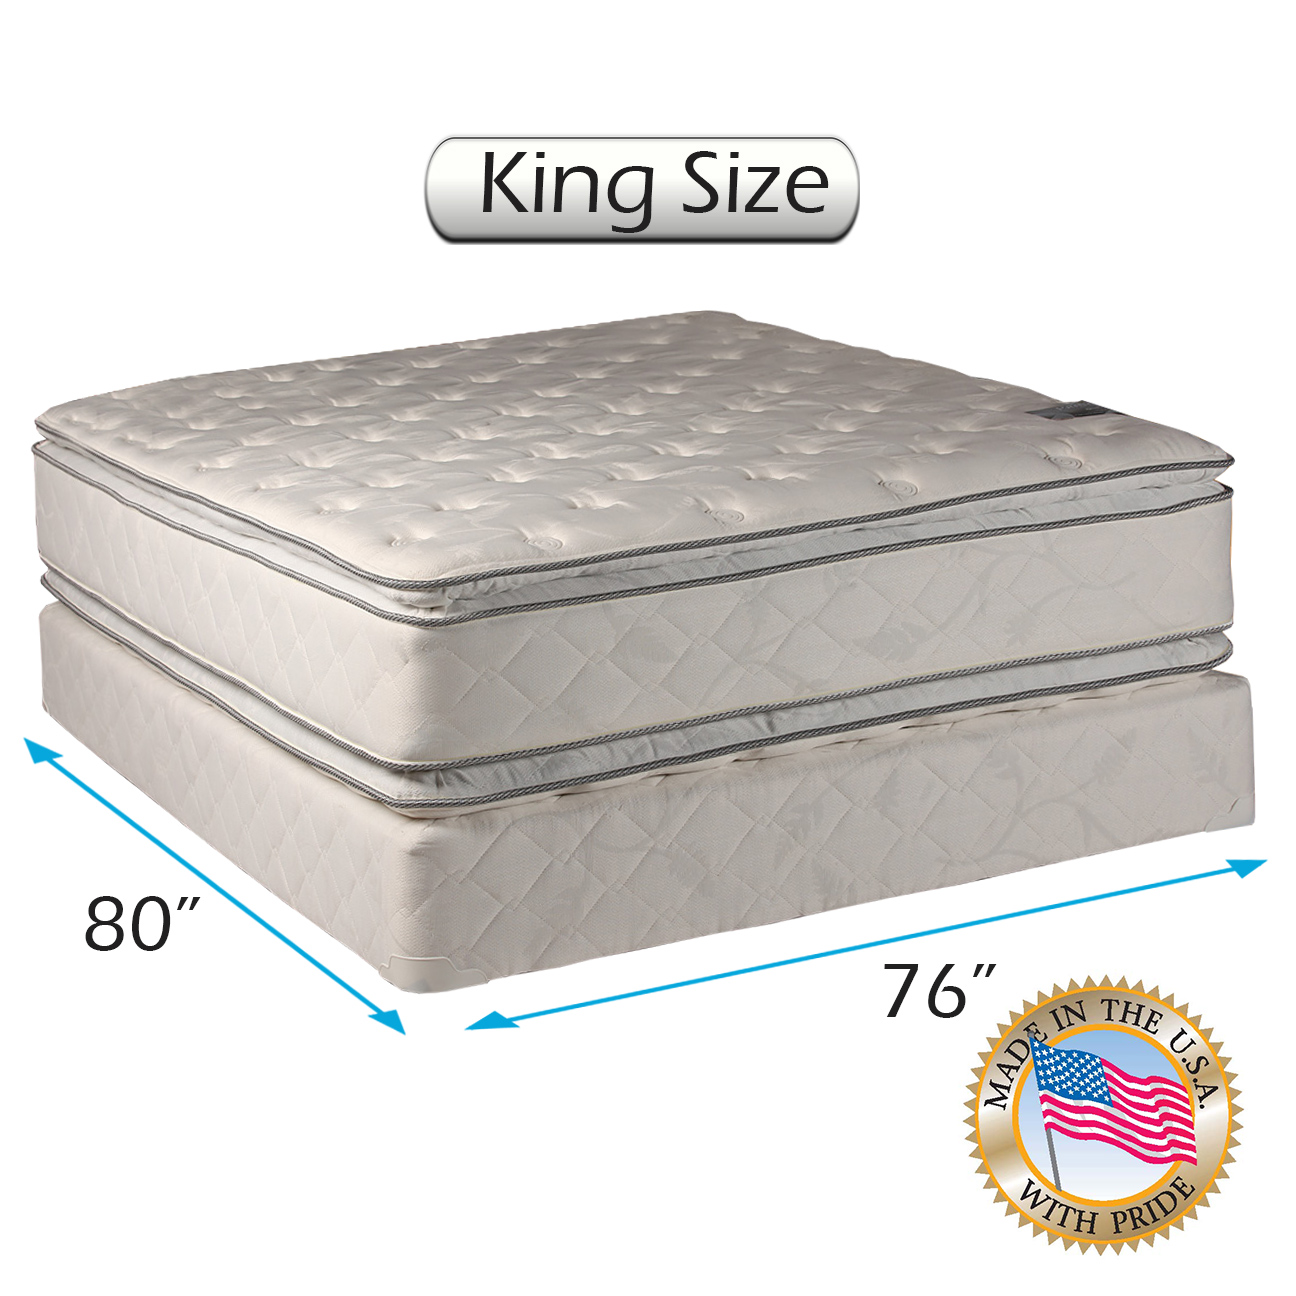 """Dream Solutions Medium Soft PillowTop Mattress set with Bed Frame Included (King - 76""""x80""""x12"""") - Two-Sided Sleep System with Enhanced Cushion Support, Fully Assembled, Back Support, Longlasting"""